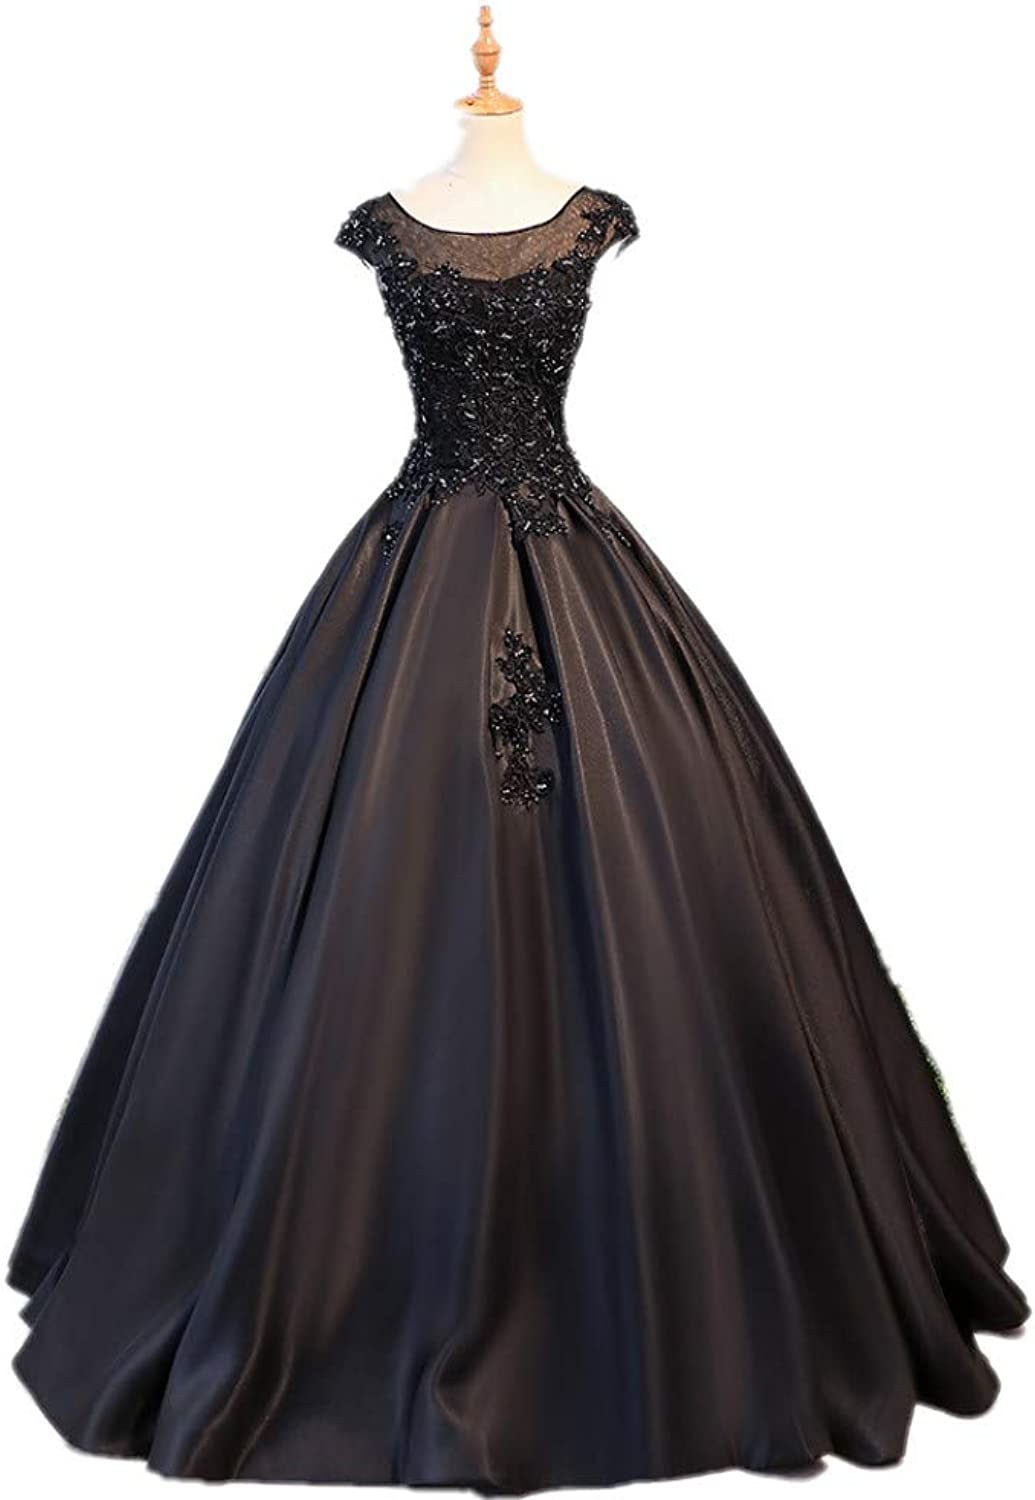 Darcy74Dulles Women's Black Sleeveless Quinceanera Dresses Appliques Lace Prom Ball Gowns Sweet 16 Dresses Plus Size